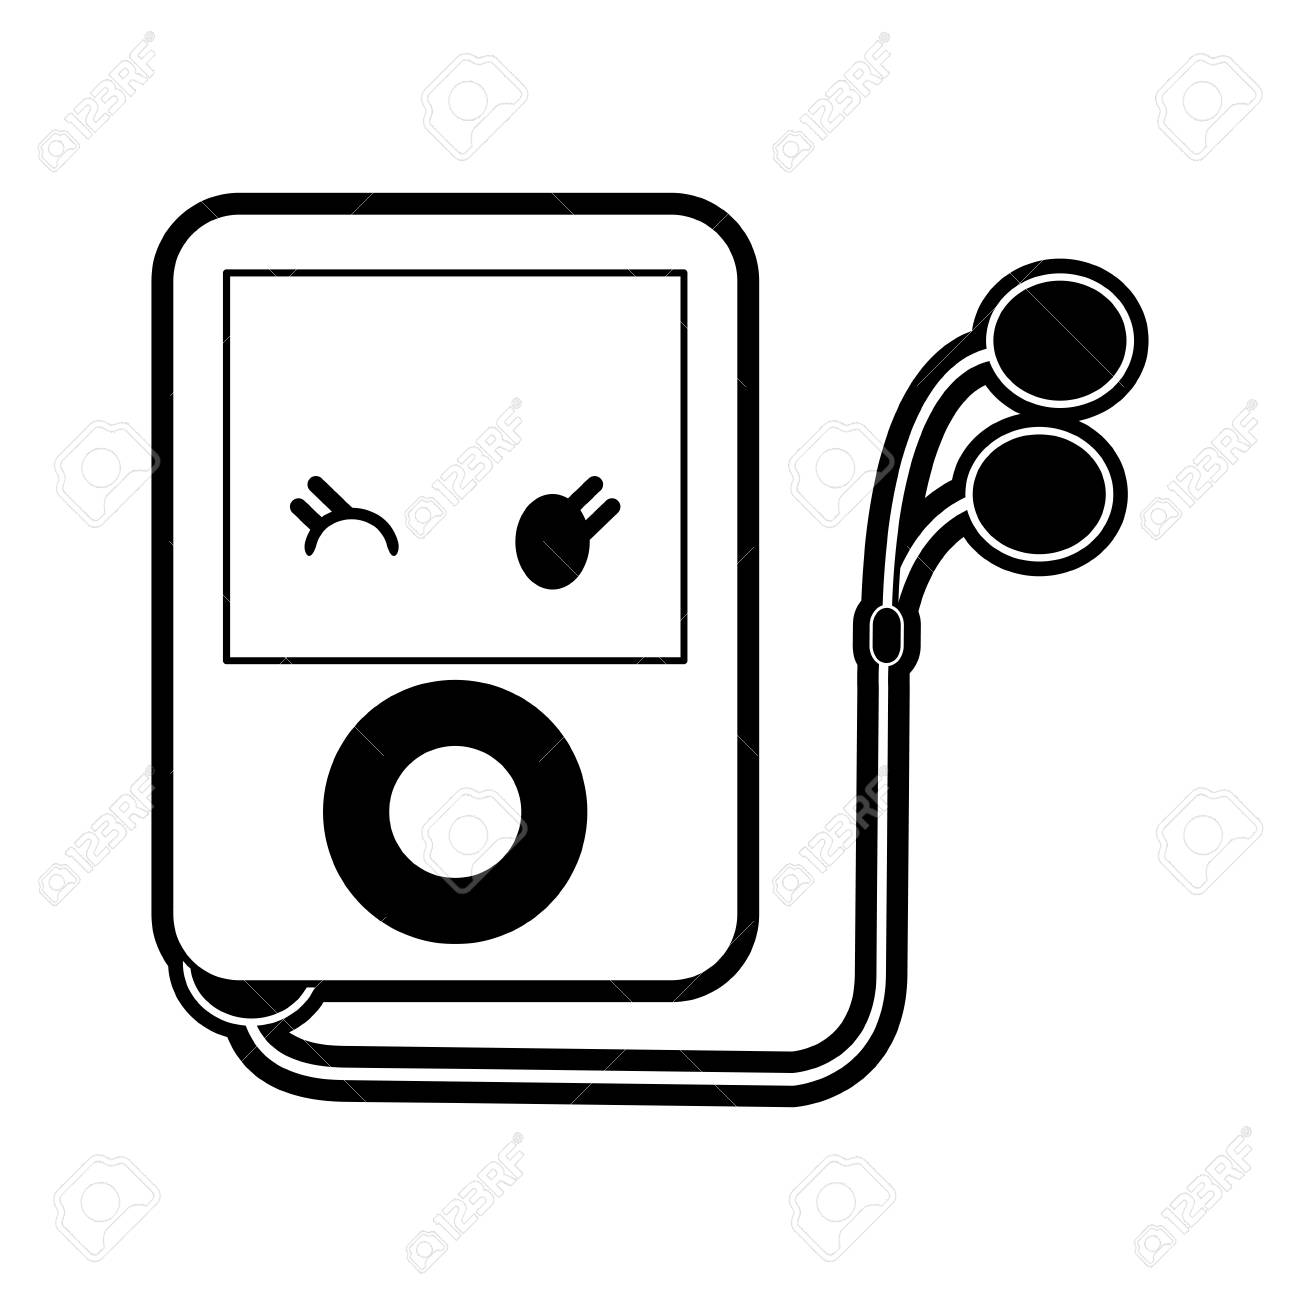 portable music player icon image vector illustration design...